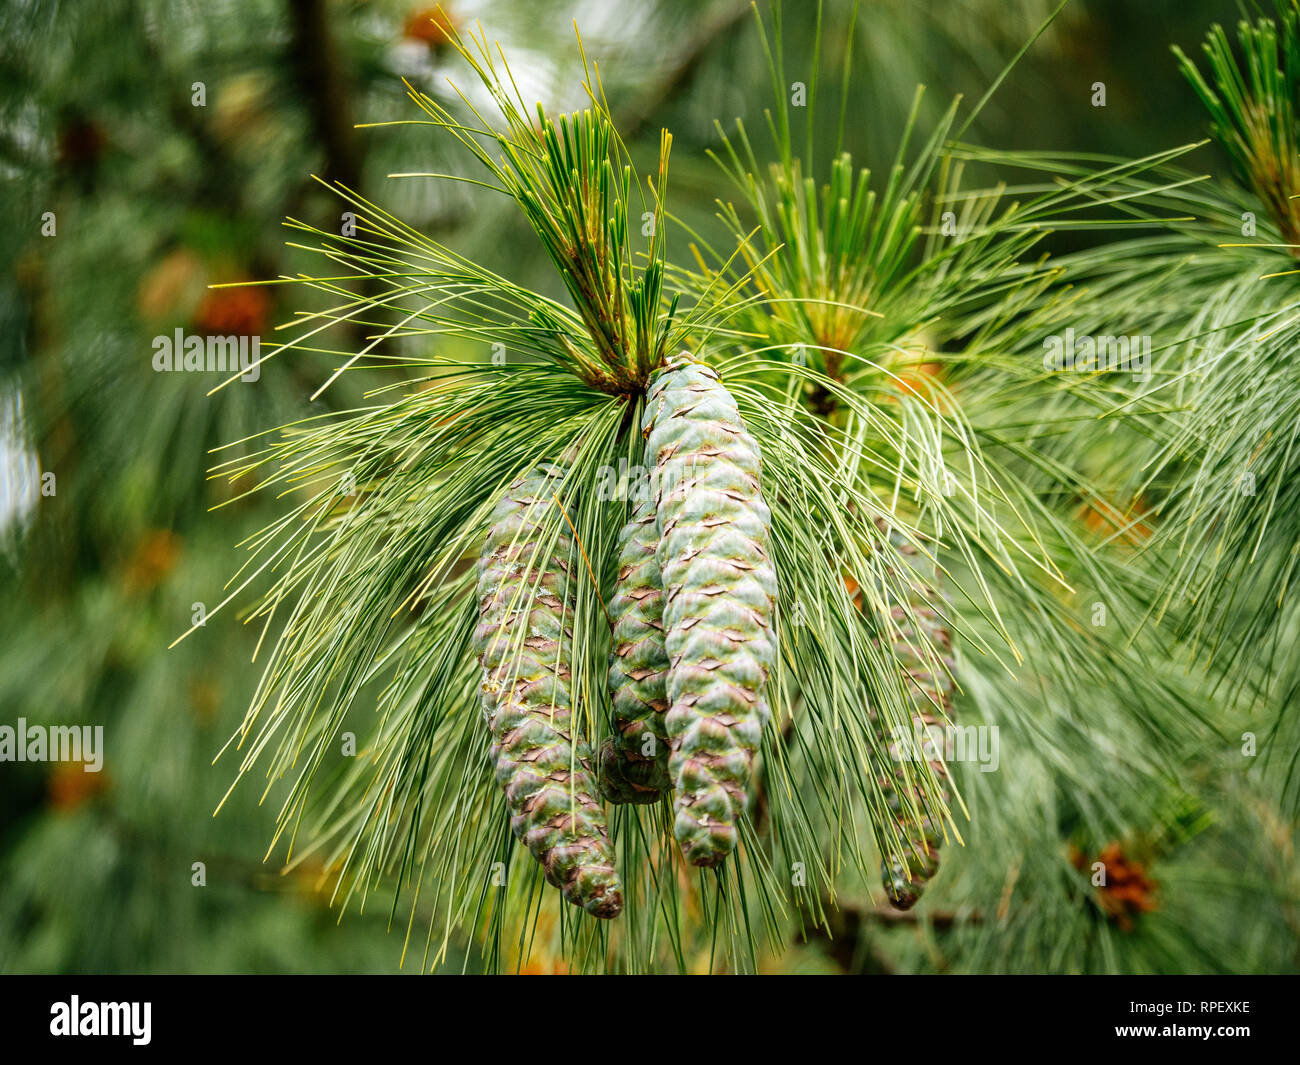 Two fresh healthy green pine tree cone - view from below - Stock Image